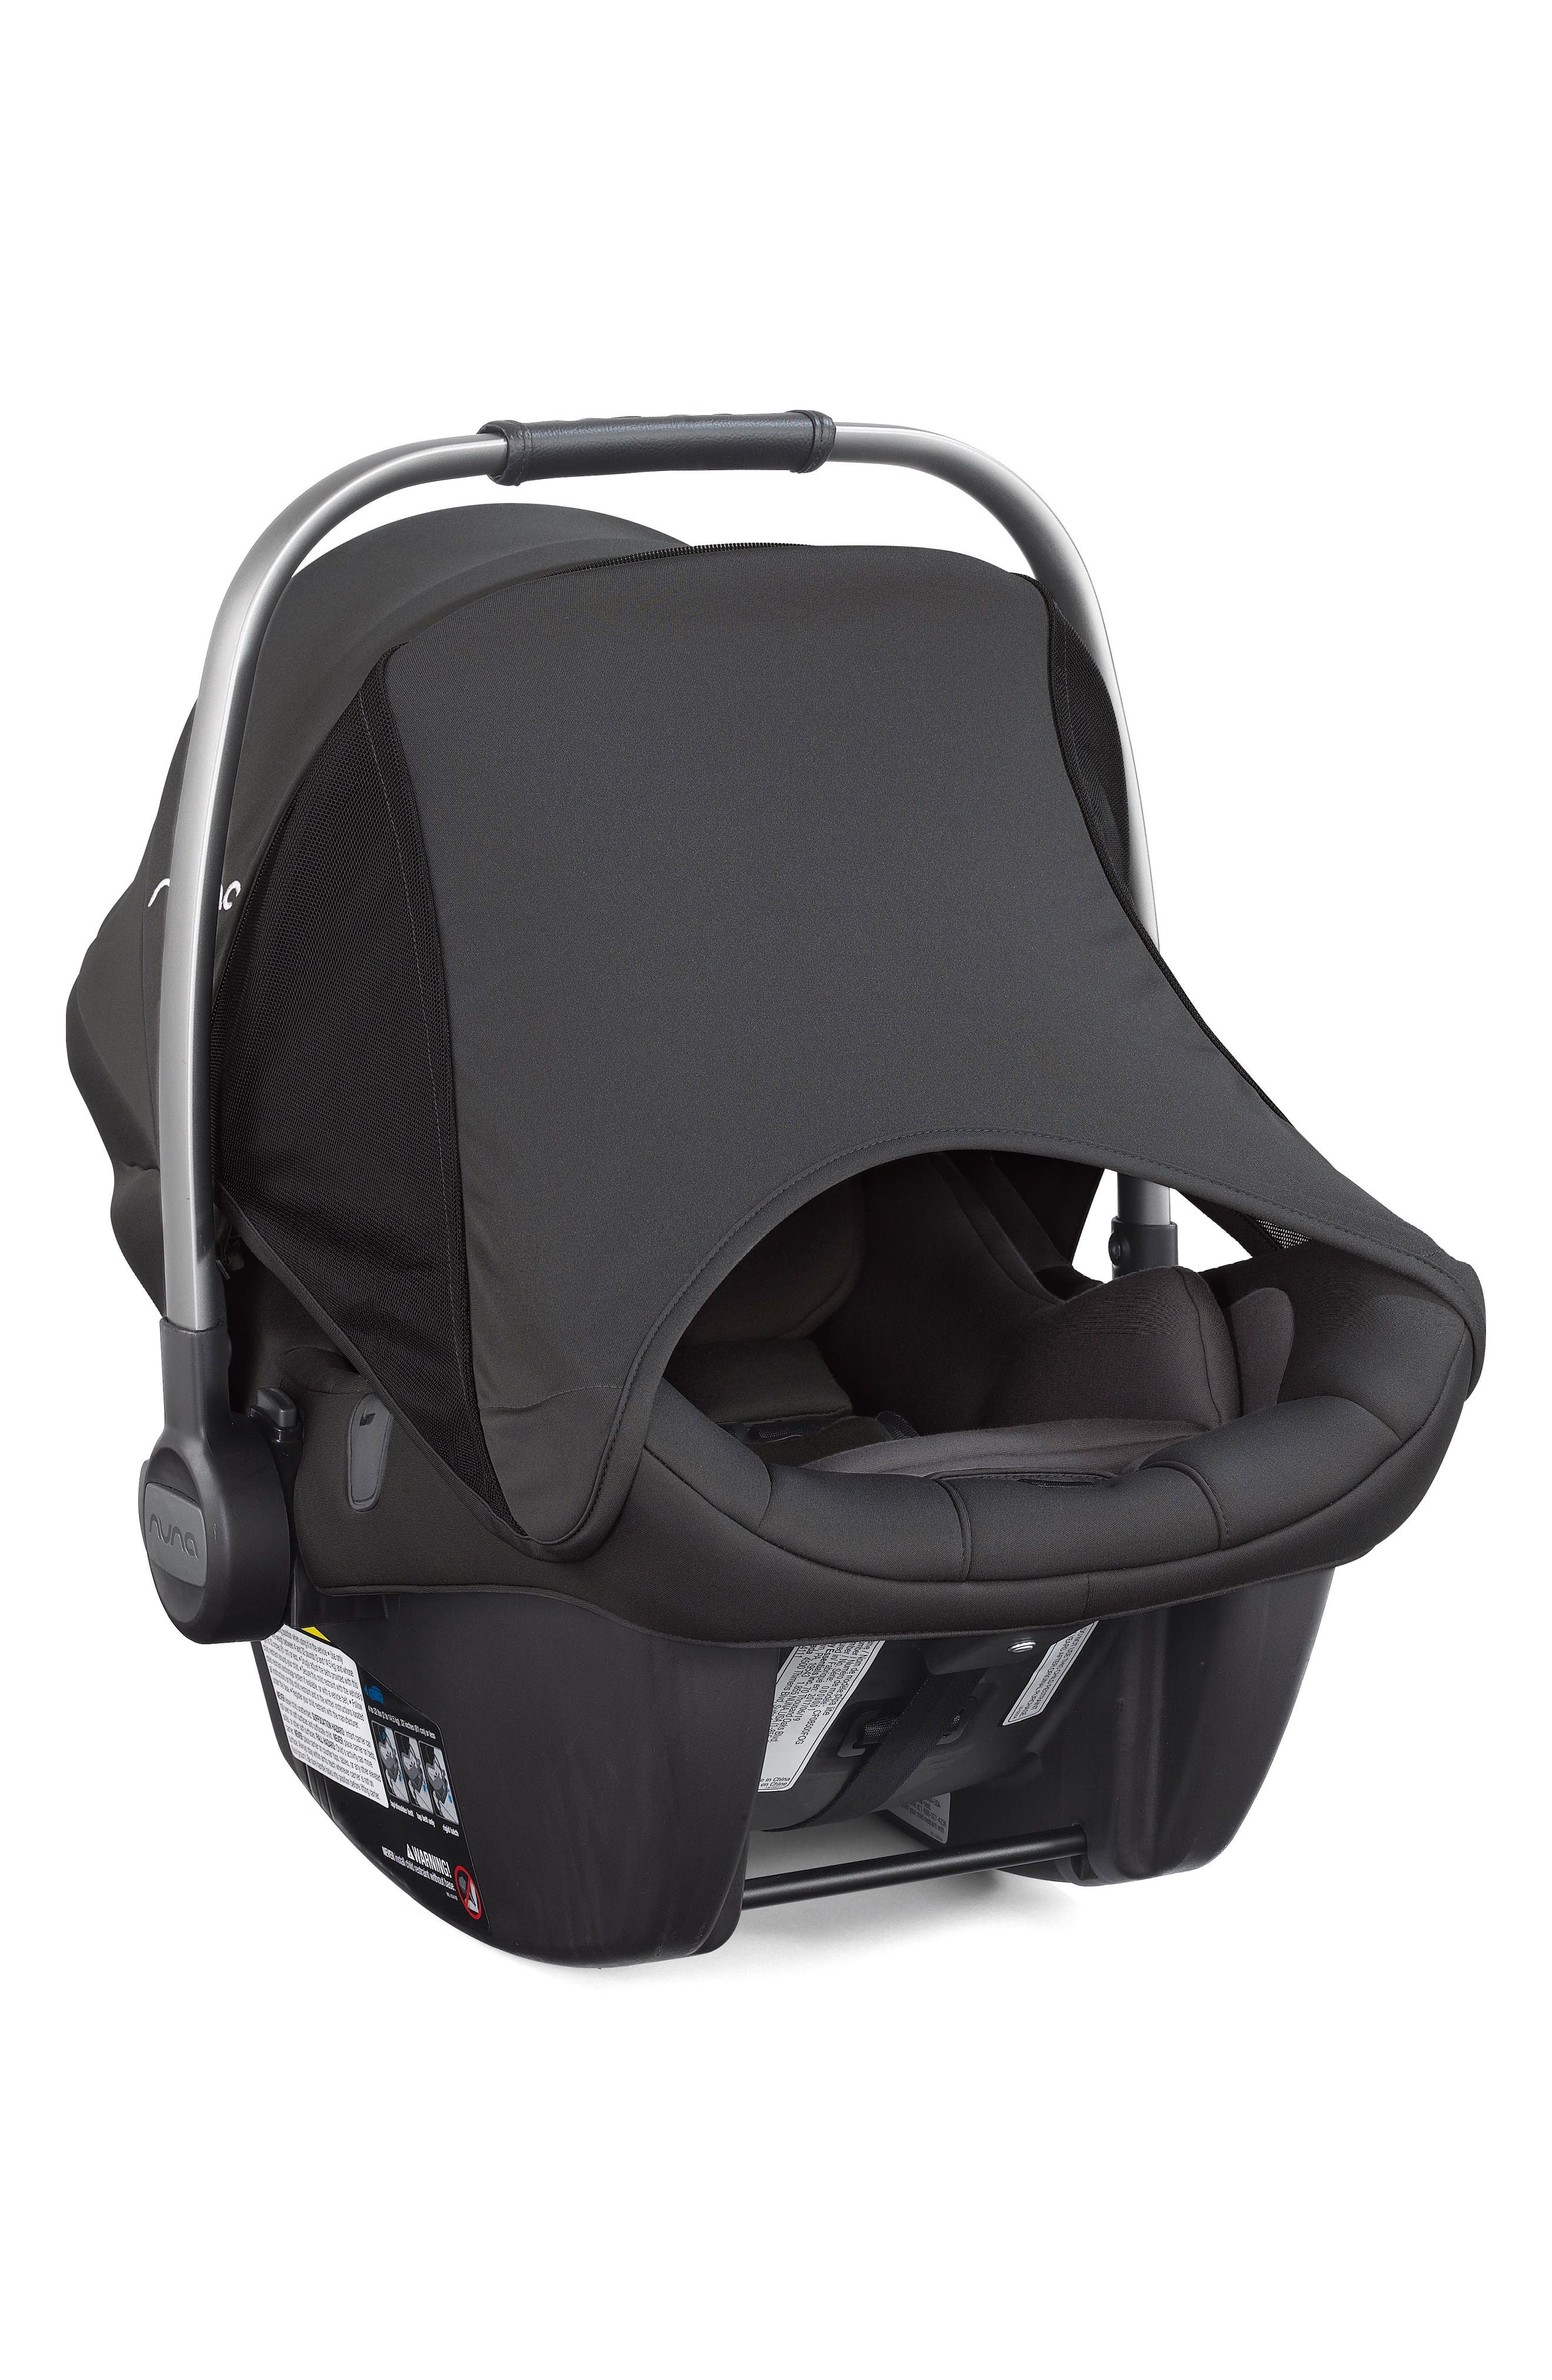 2017 PIPA<sup>™</sup> Lite LX Infant Car Seat & Base,                             Alternate thumbnail 7, color,                             STONE